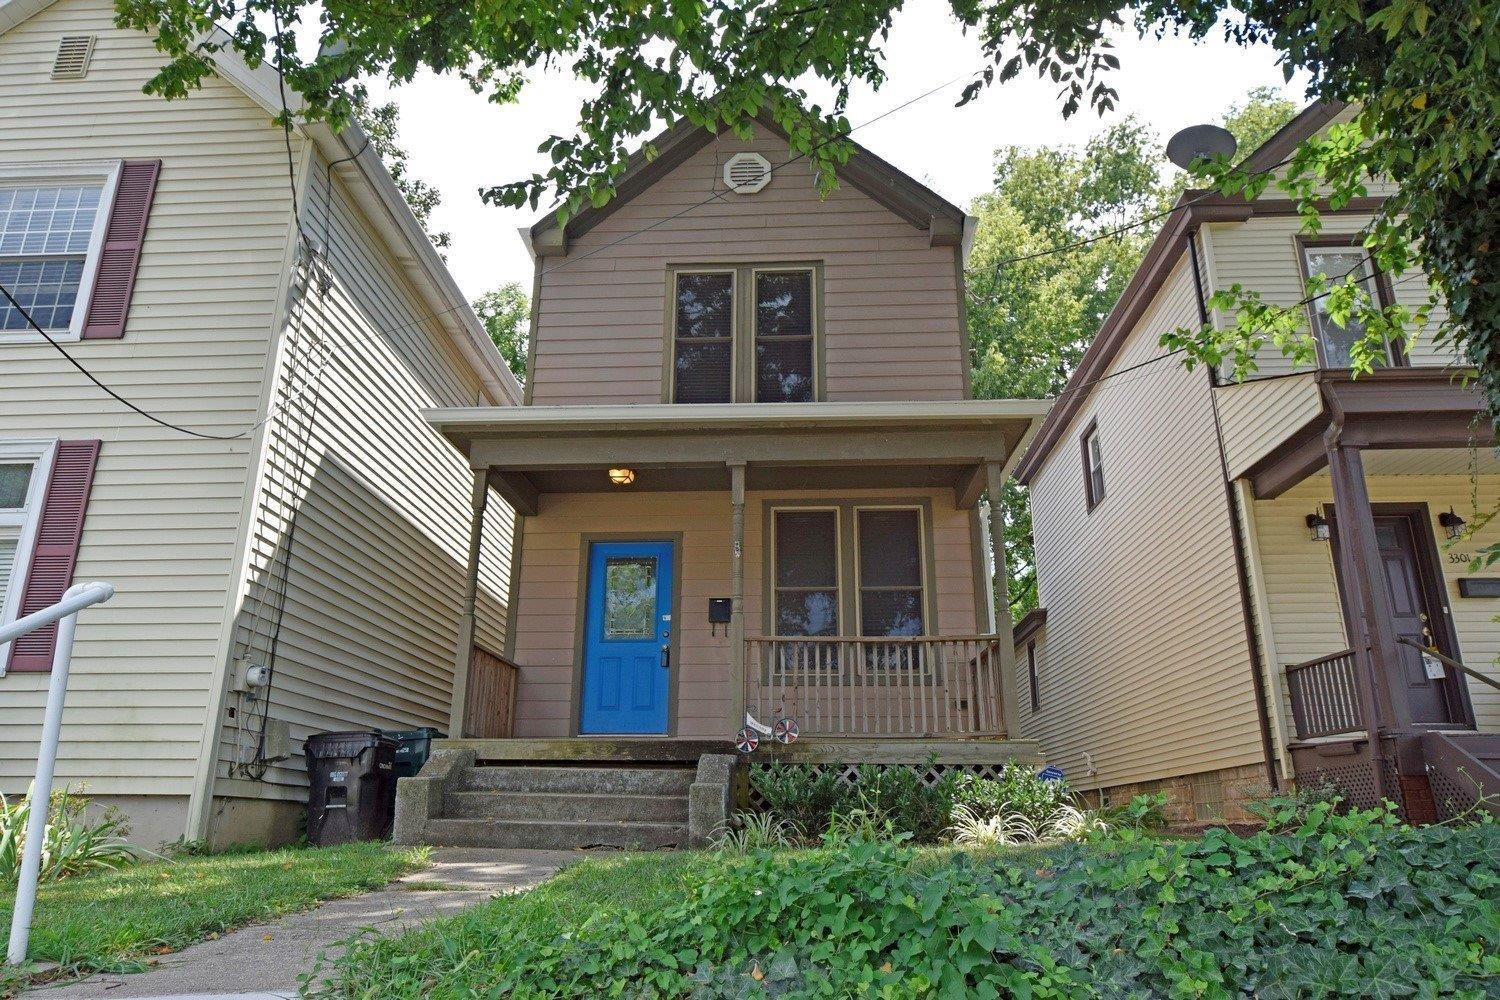 Fantastic updated home in the heart of Oakley!*Practical open flr plan*9' ceilings*Hrdwd floors throughout*1st fl half BA/2nd fl full BA*Updated kit w/ new SS appliances*Updated electric w/CAT5*Pella Windows*Deep/level yard w/ deck & fire pit*Quiet street w/ easy street parking*Just steps away from the new local brewery & many restaurants & shops!